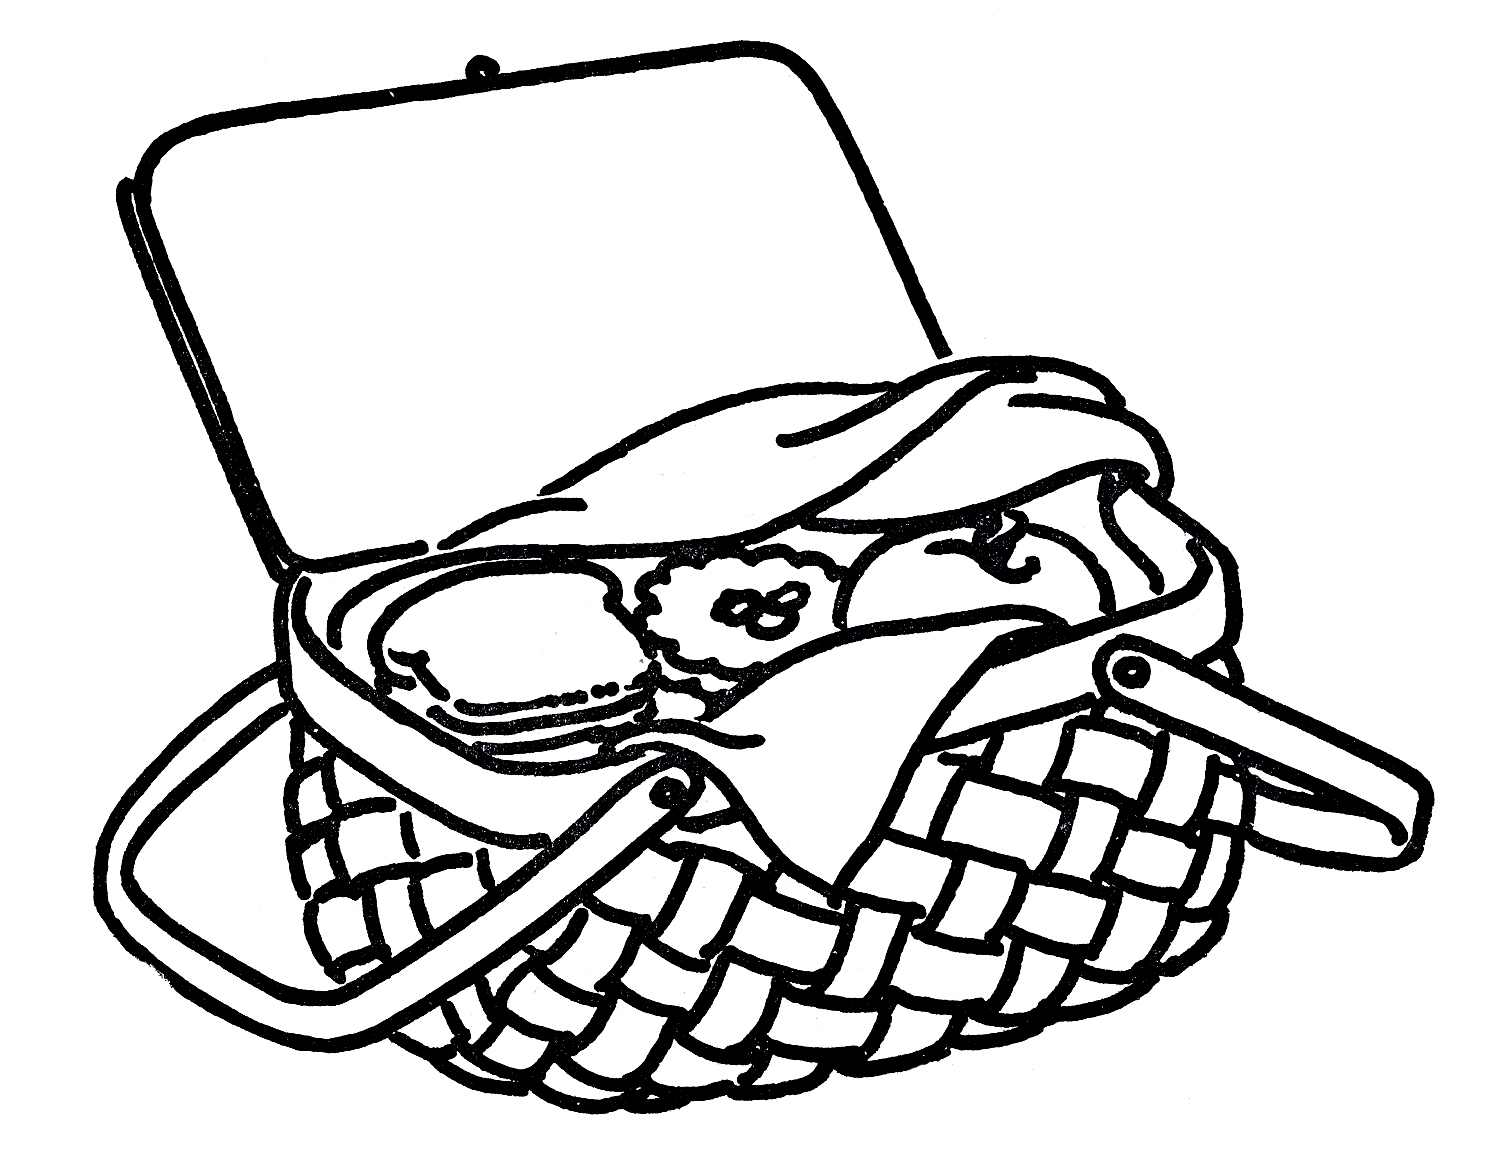 Picnic Basket Clipart Black And White-picnic basket clipart black and white-6